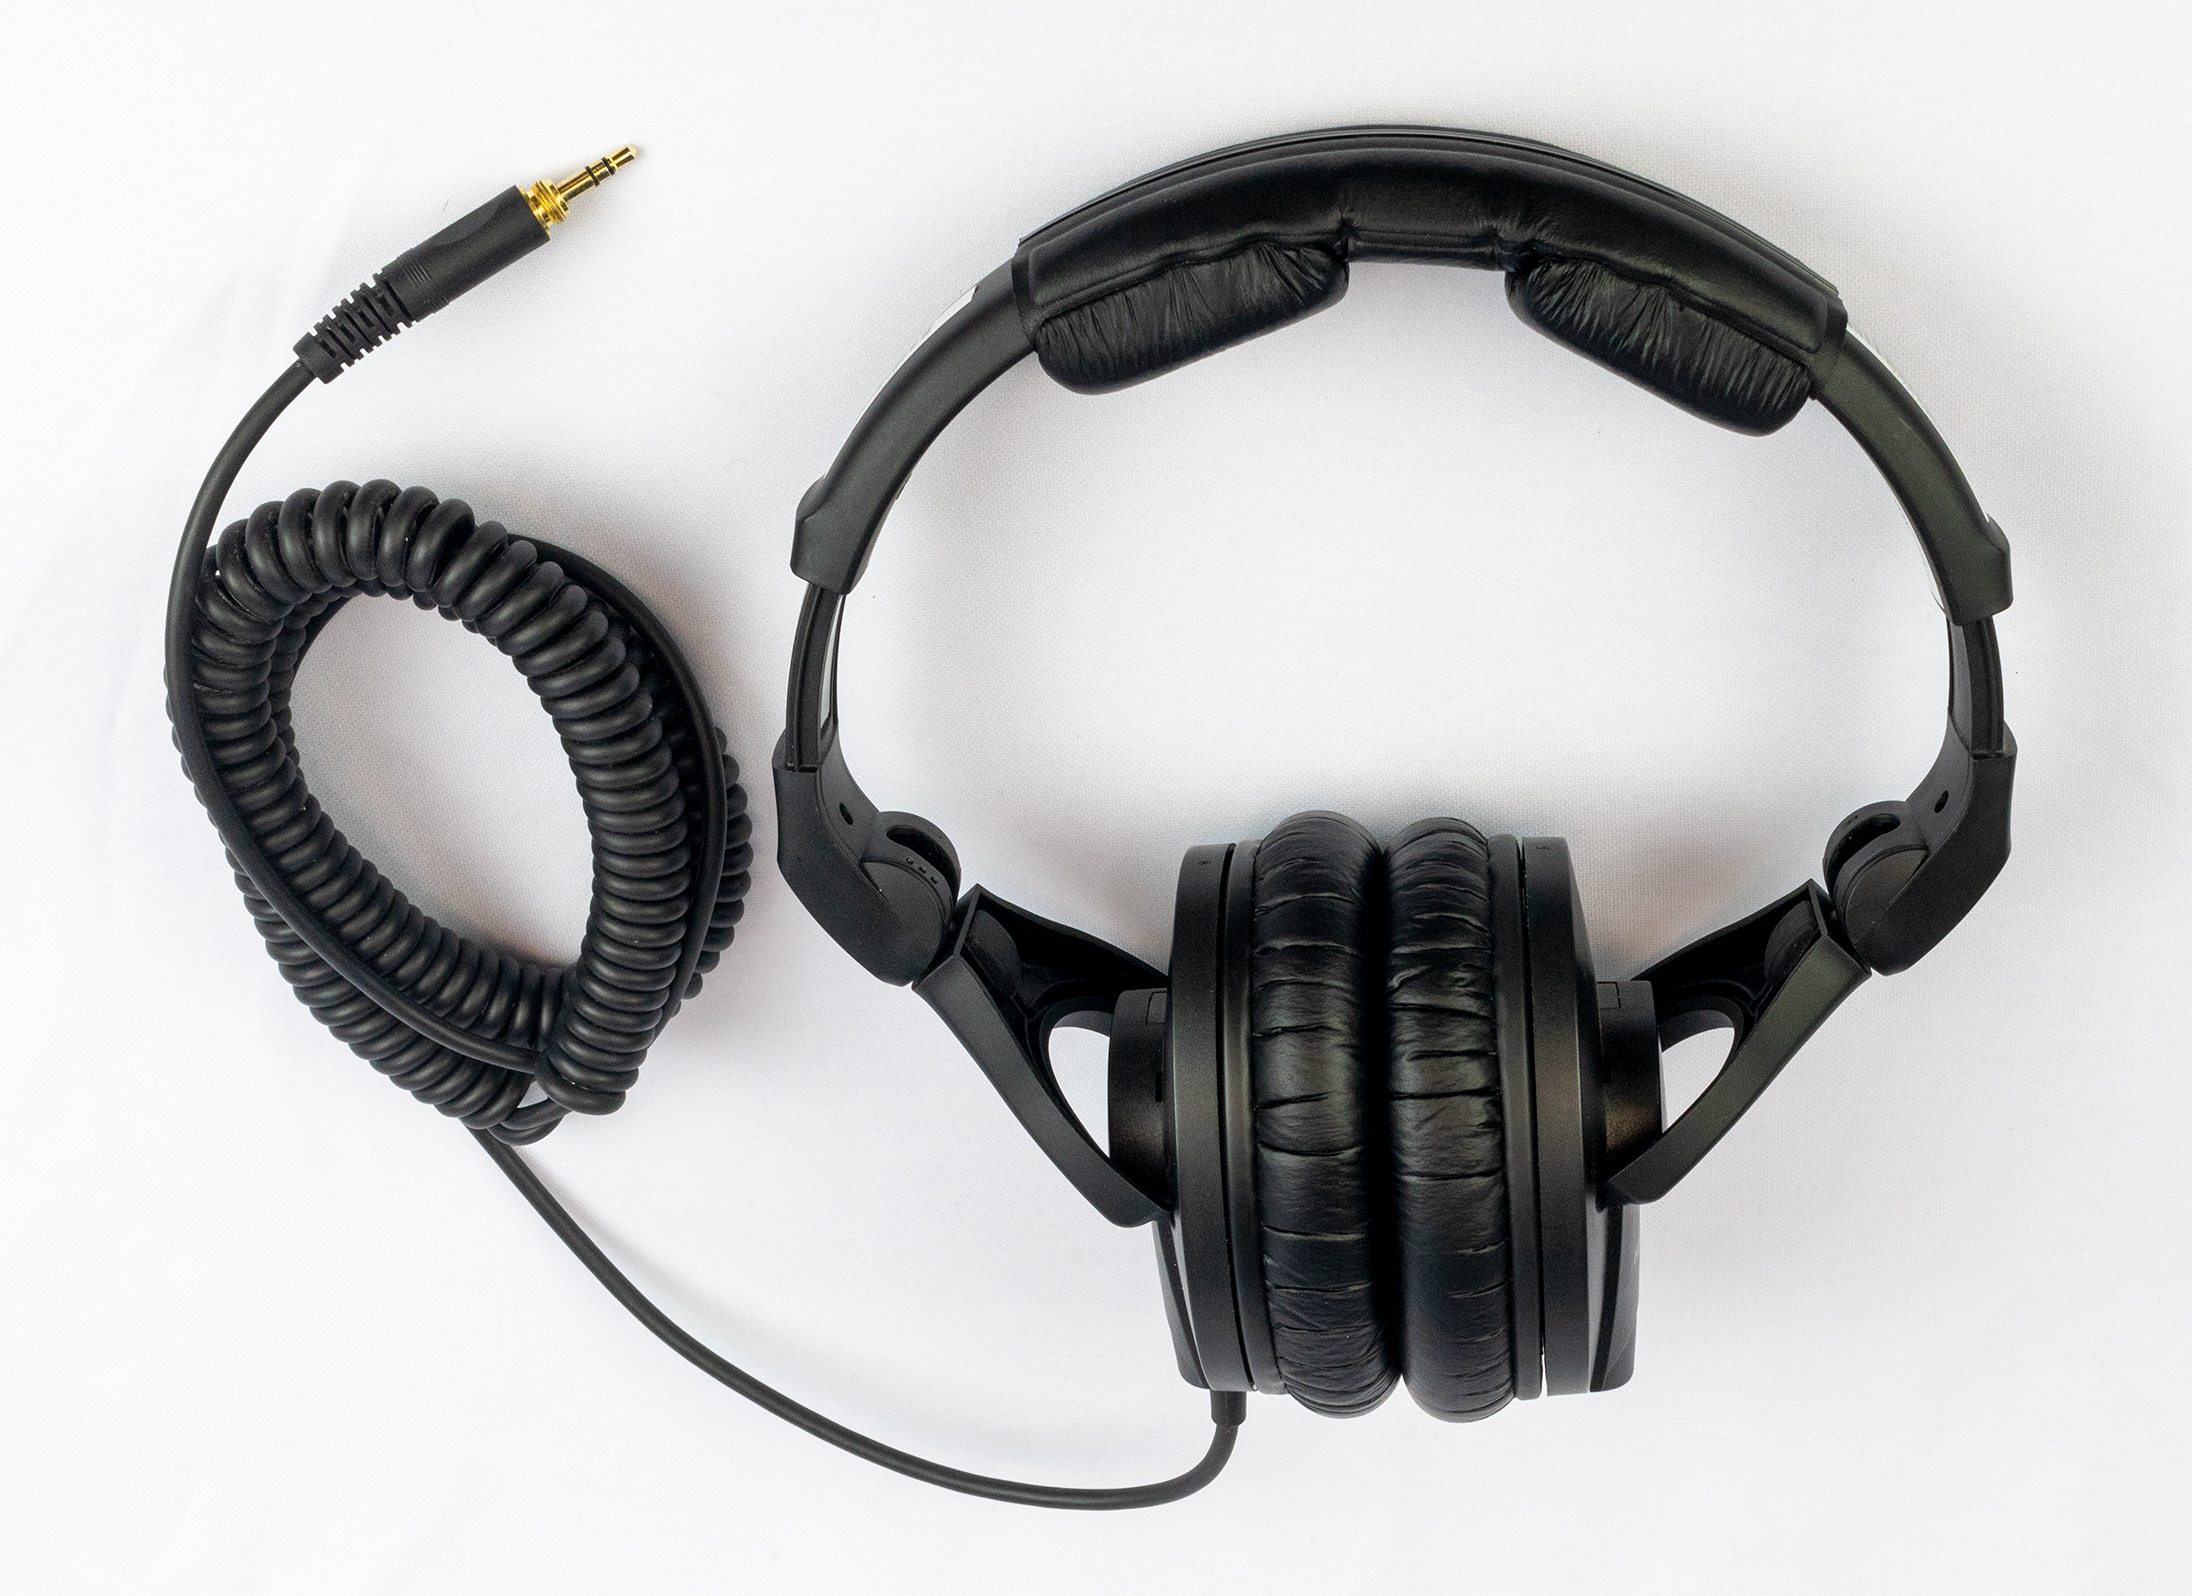 Sennheiser HD 280 Pro Headphones Photo